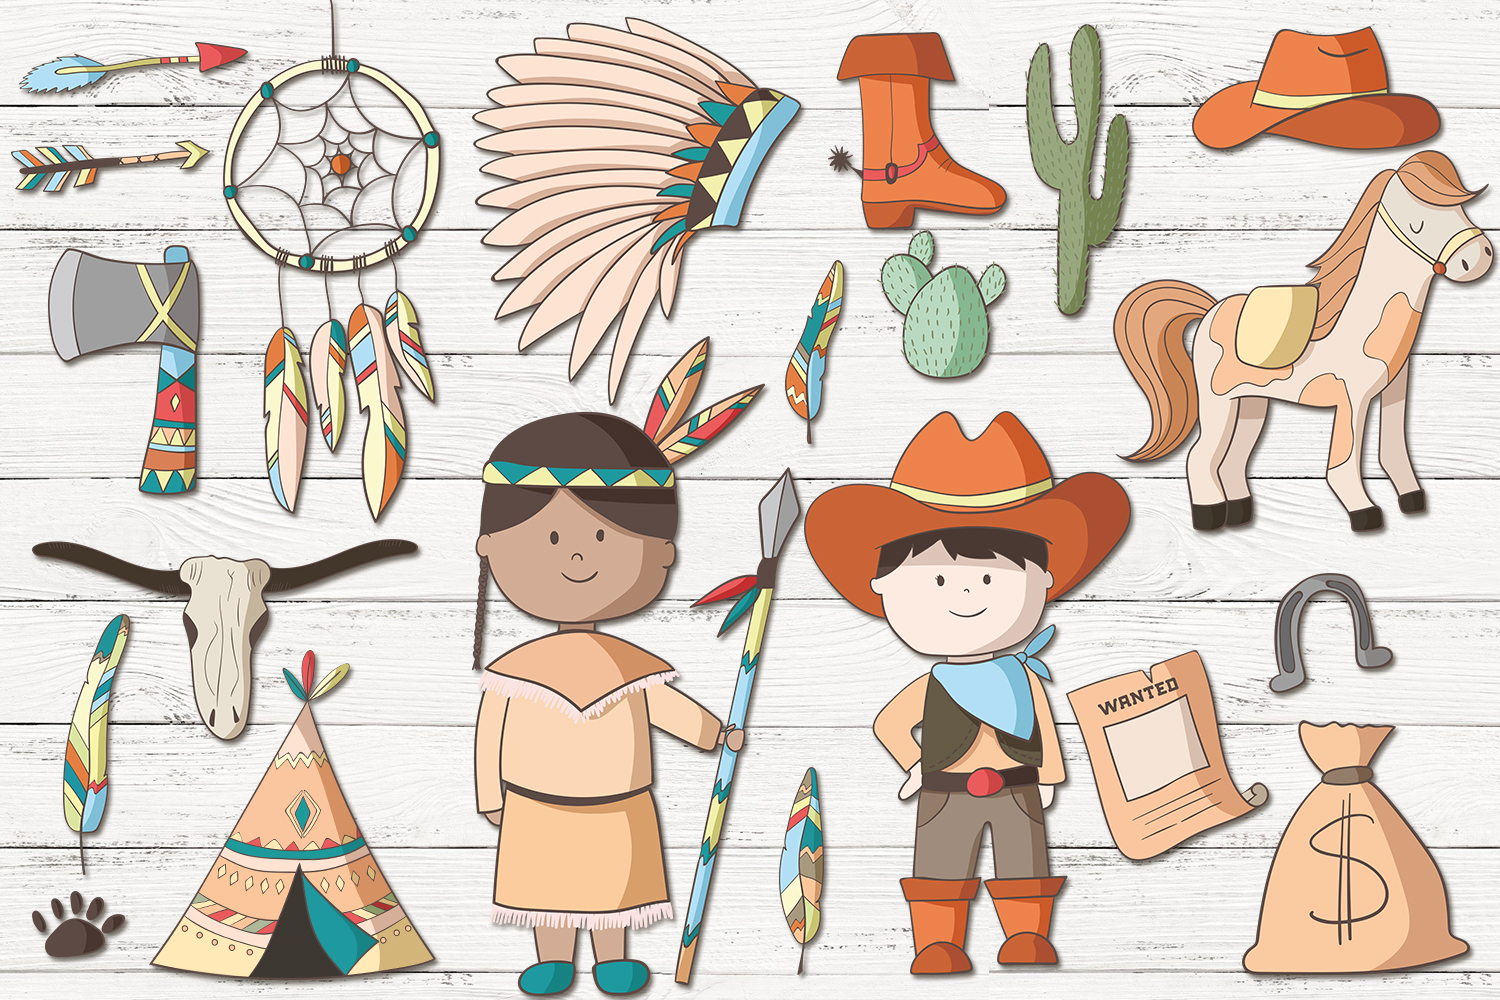 Cowboys and Indians example image 2